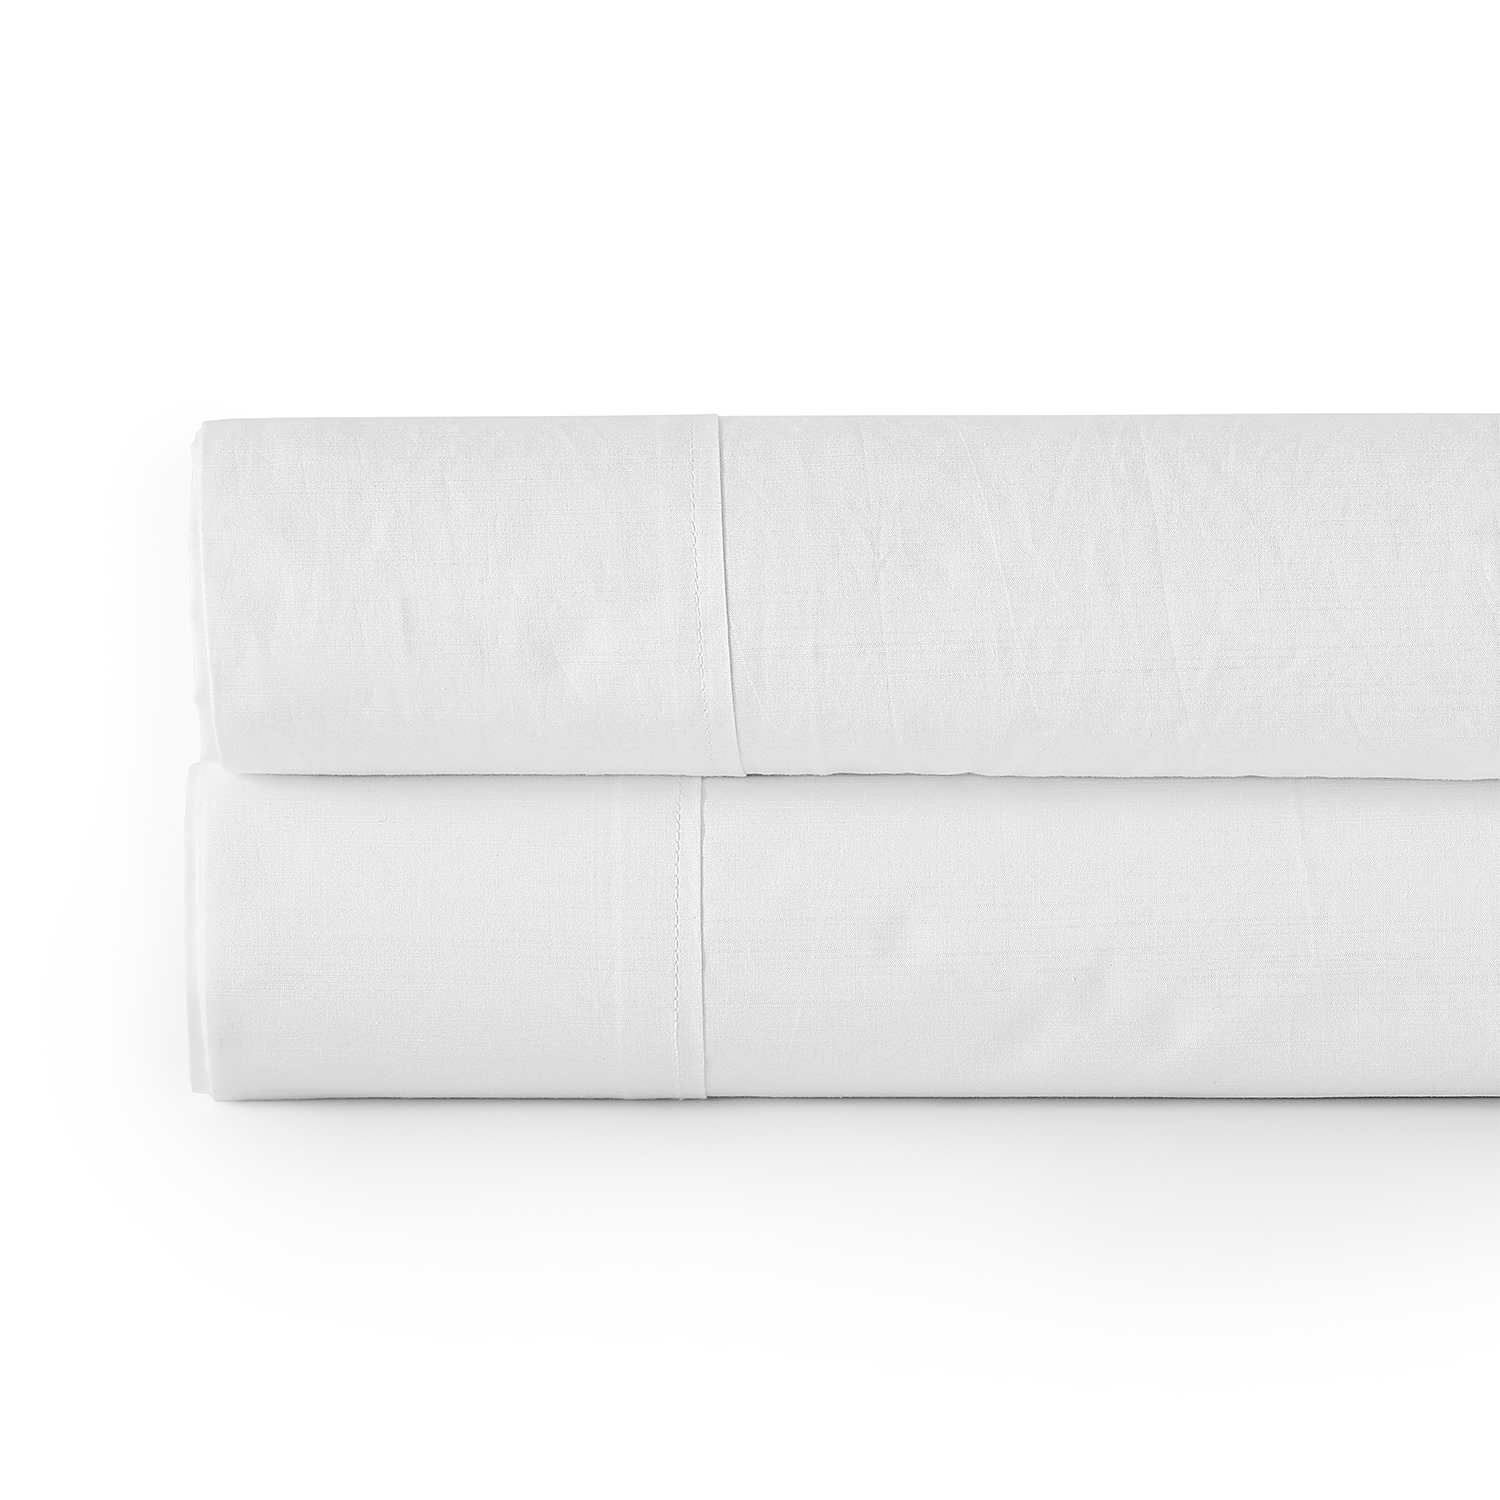 Flat Textured 100% Cotton Percale Solid Optic White  Sheet